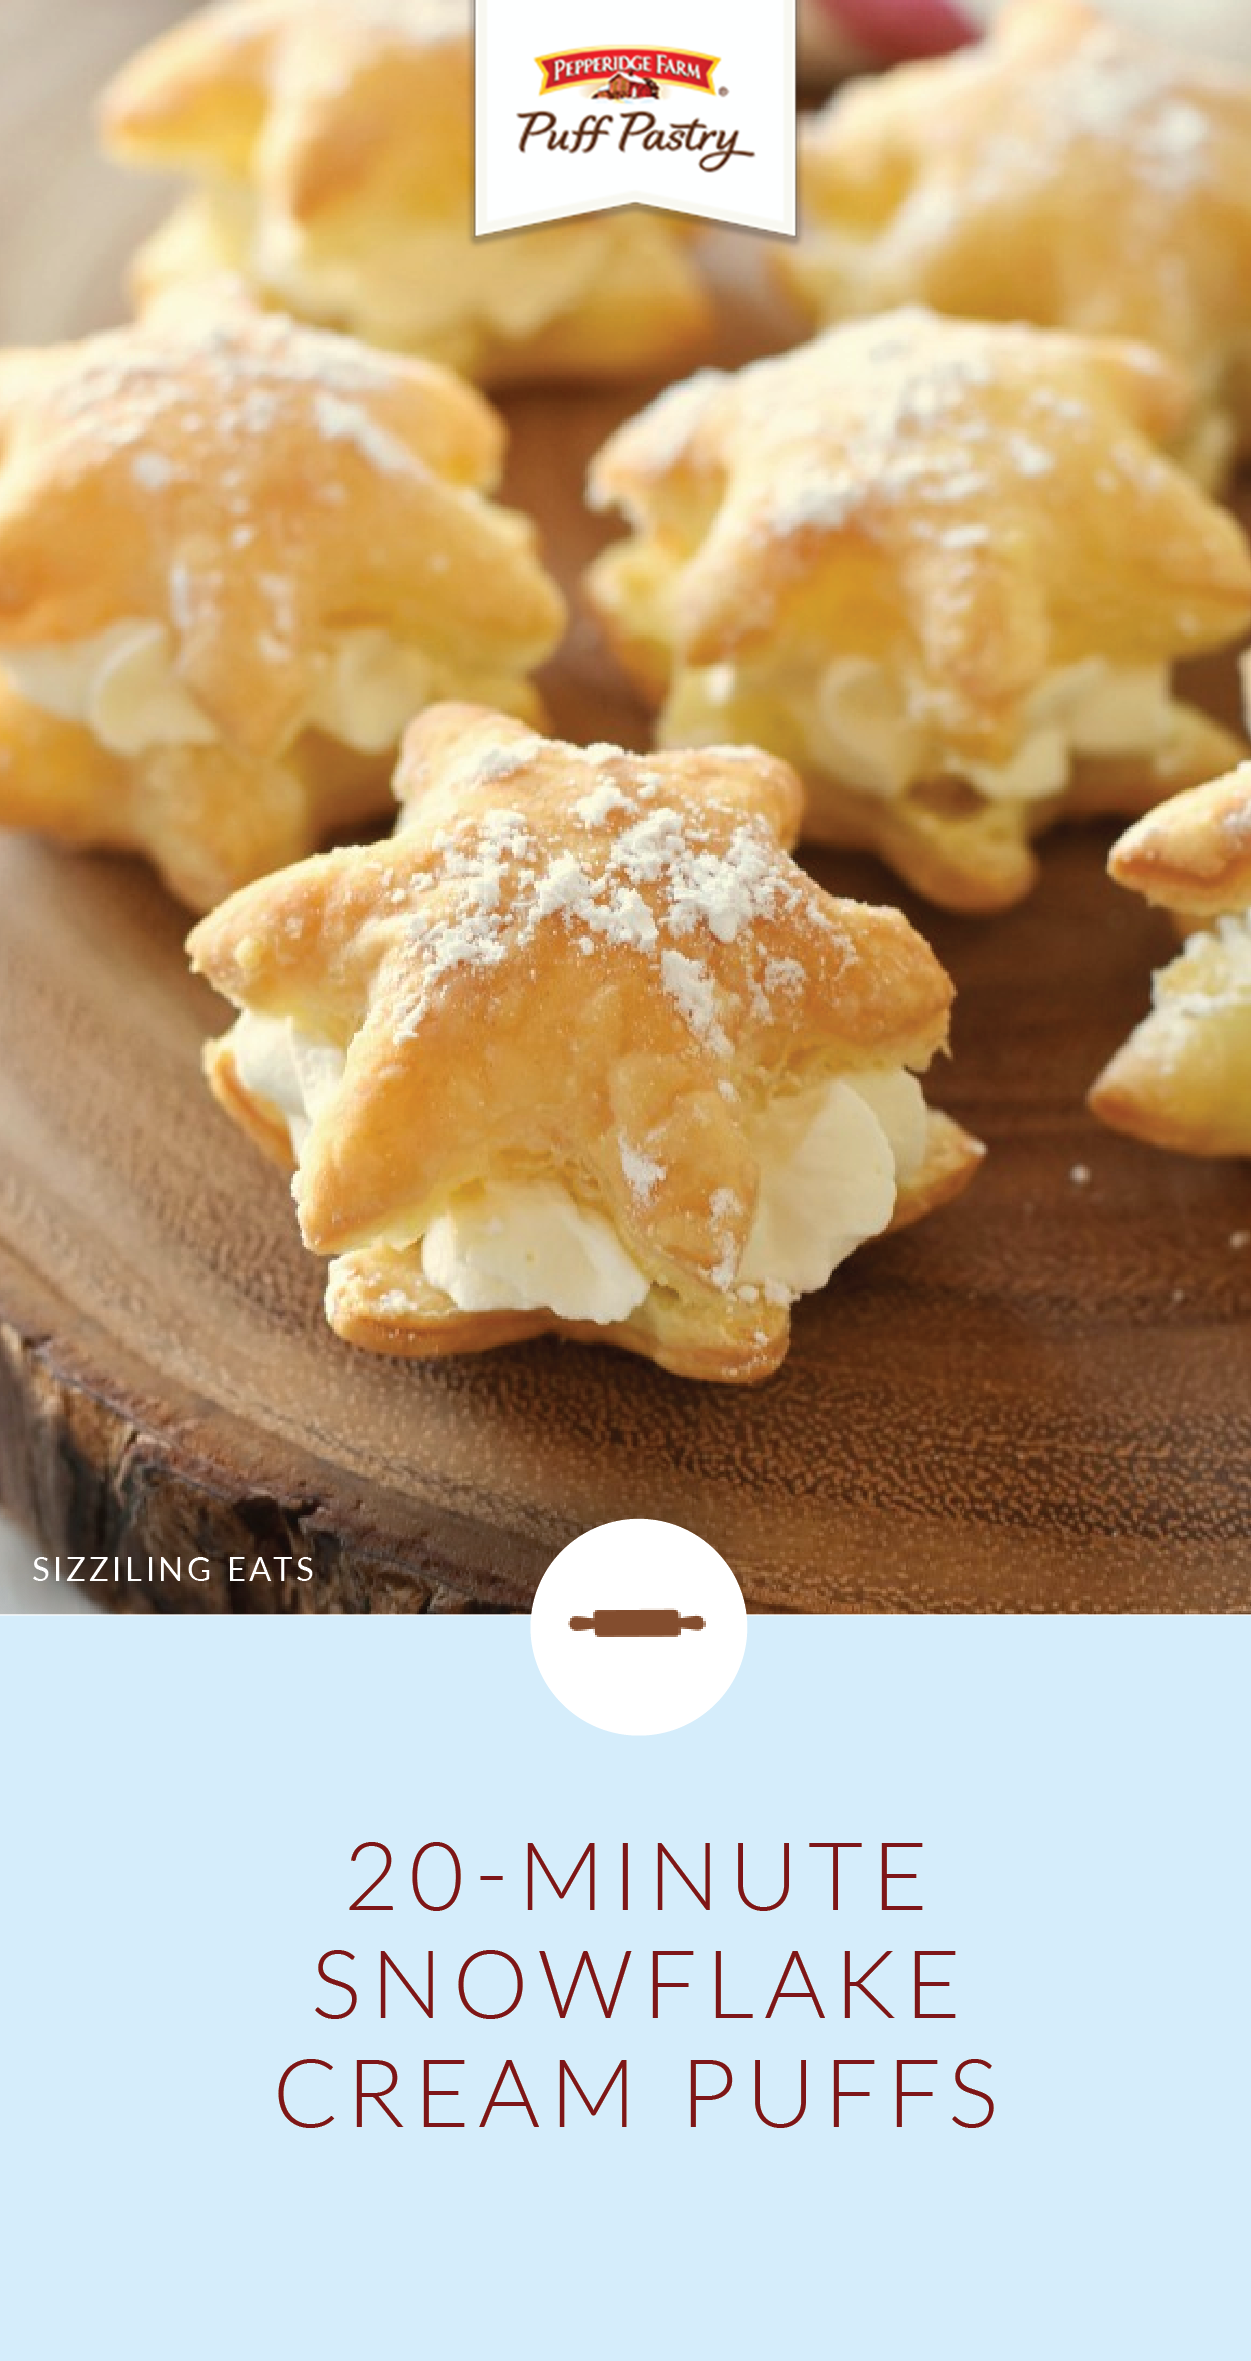 Baking puff pastry dough. Culinary delights in 15 minutes 63